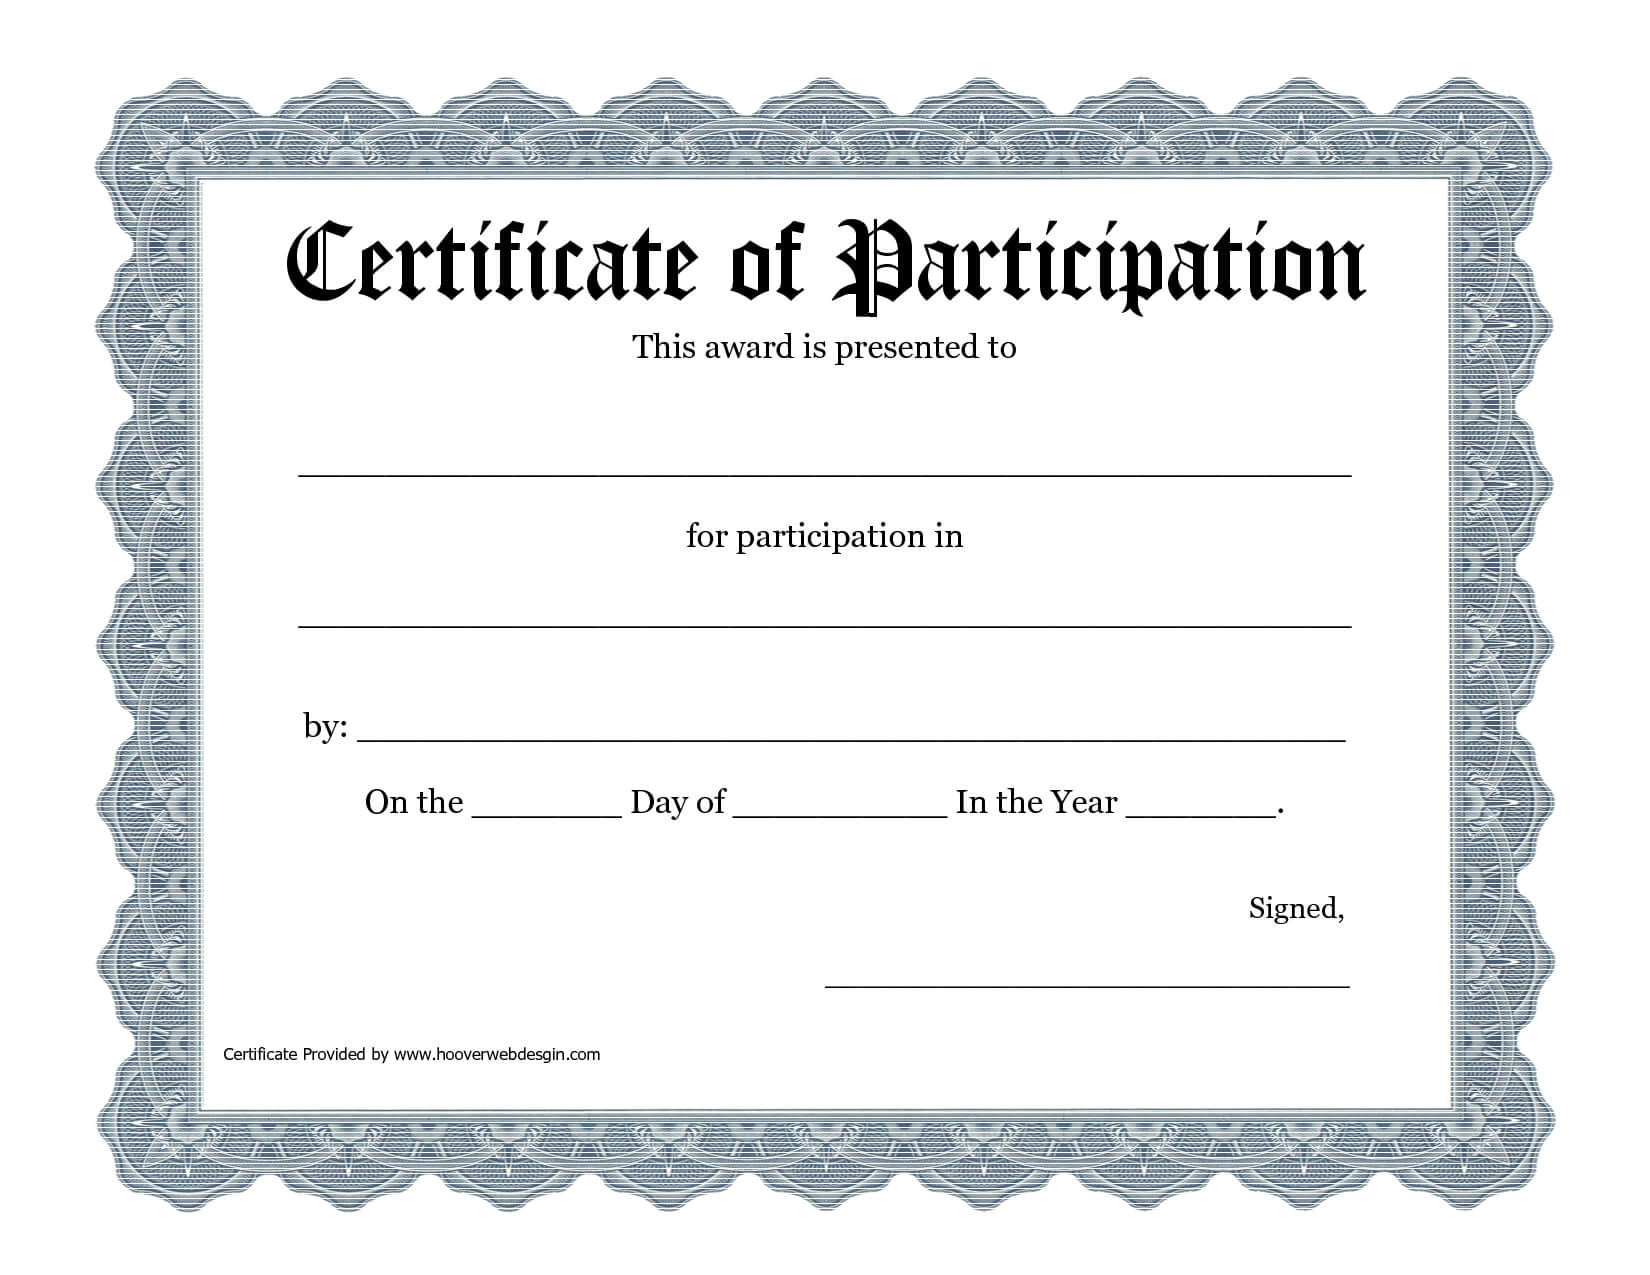 Free Printable Award Certificate Template - Bing Images For Certification Of Participation Free Template